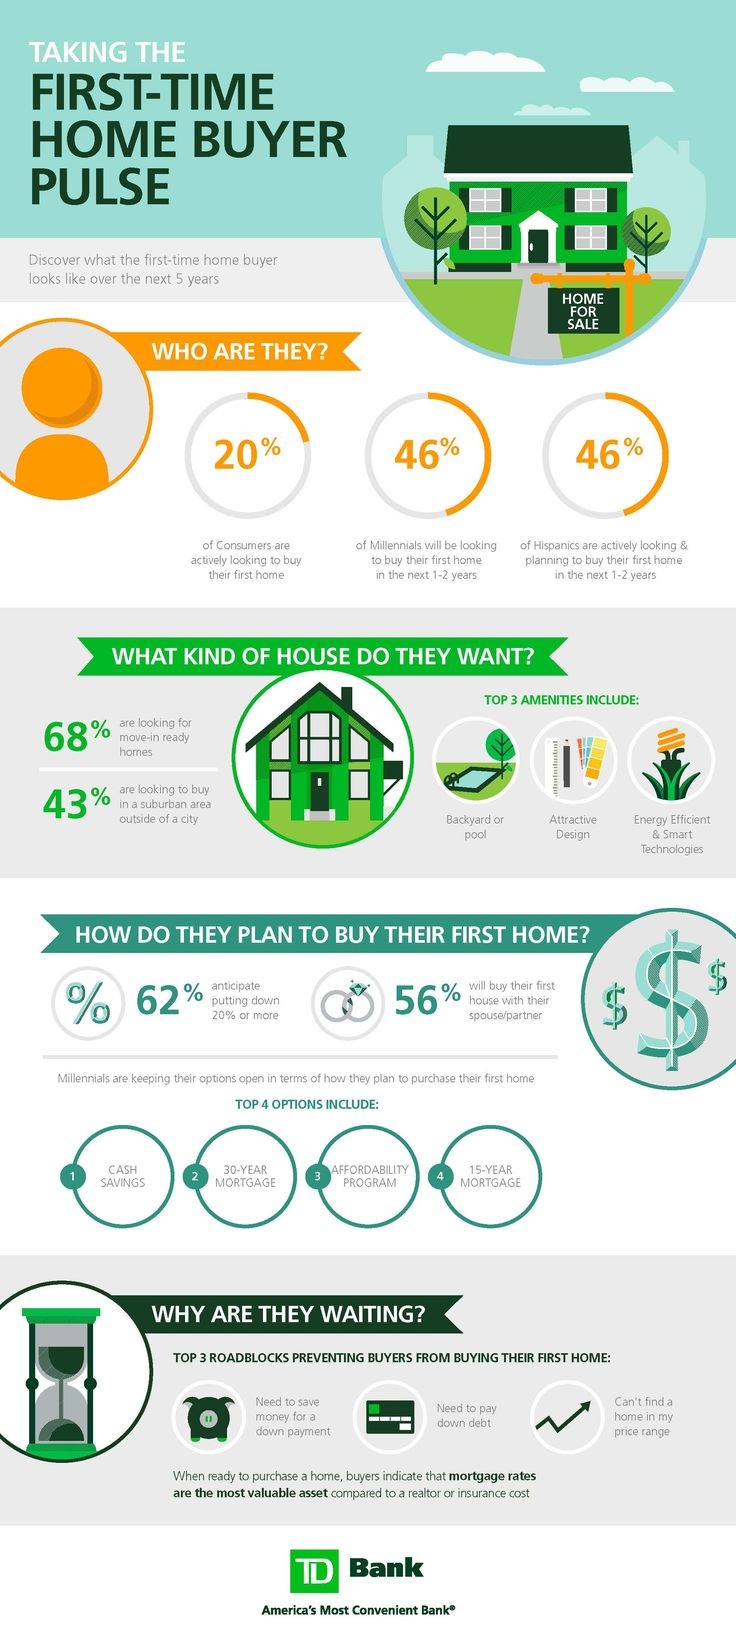 5 things every firsttime home buyer needs to know first